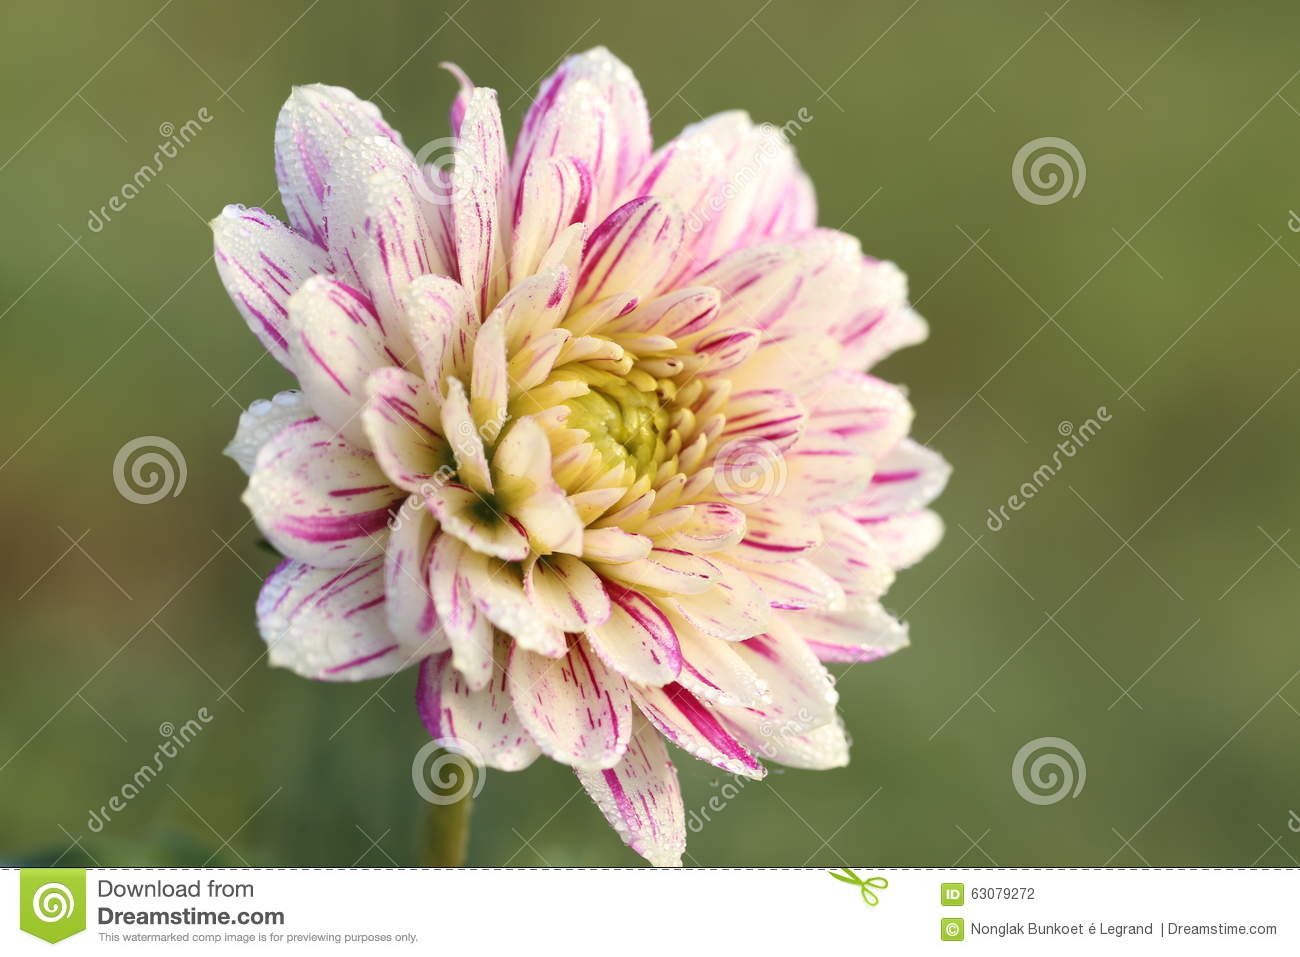 Download Plan Rapproché De Fleur Rose Et Blanche D'aster Photo stock - Image du centrale, nature: 63079272